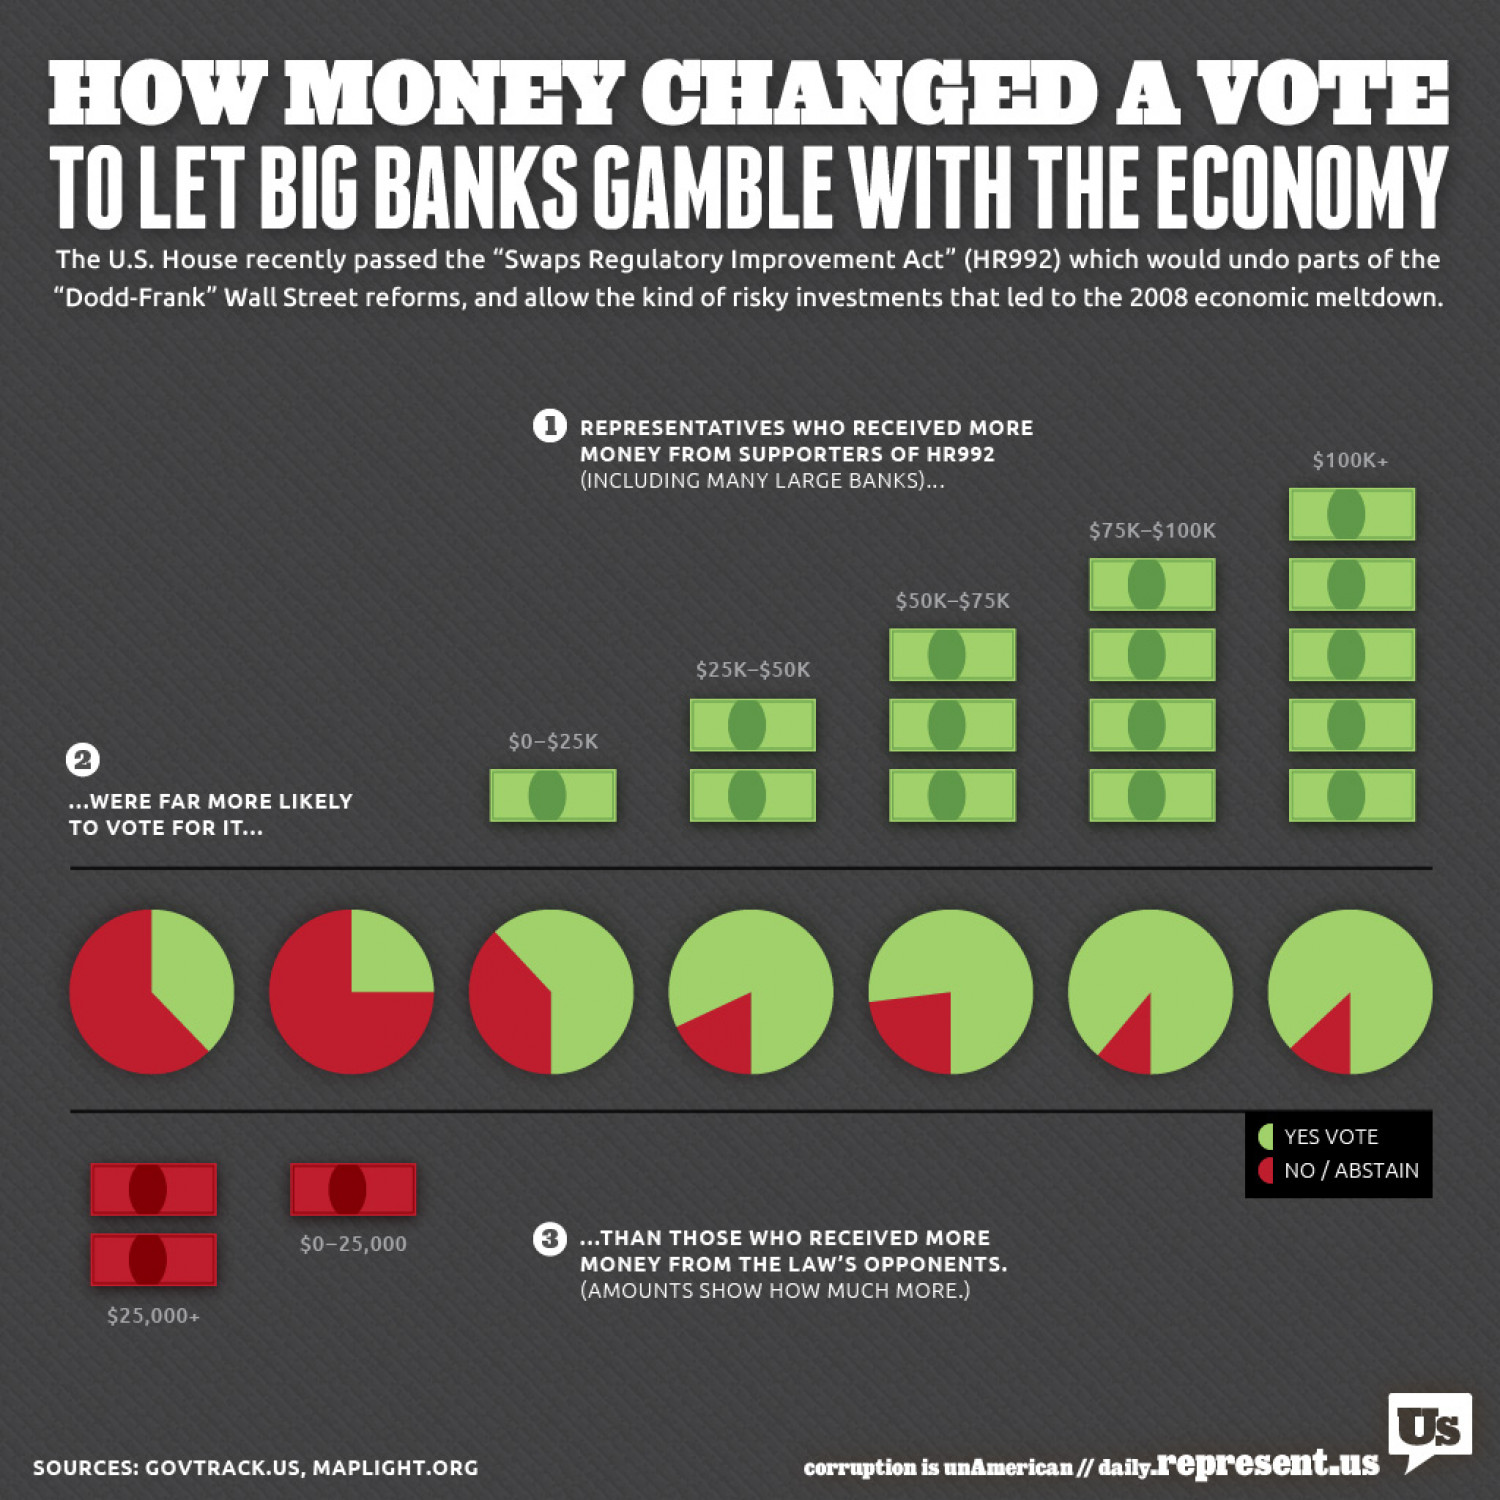 Why The US House Passed a Law Written by Banks Infographic